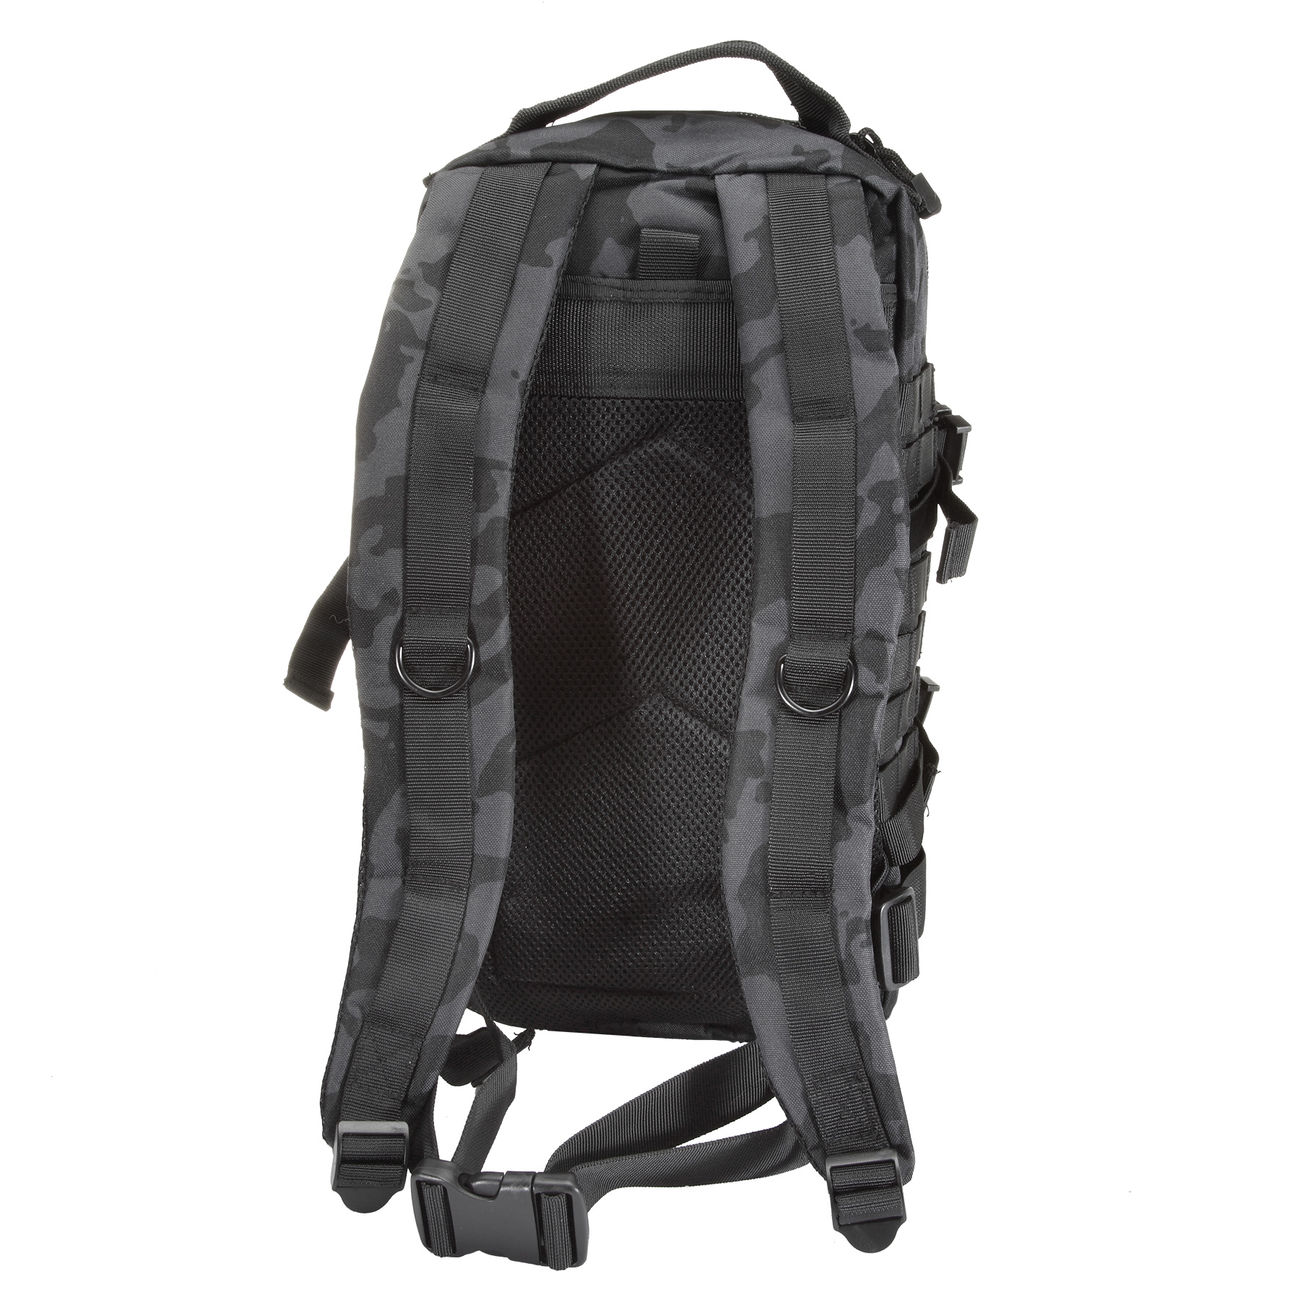 MFH US Rucksack Assault I night camo 3